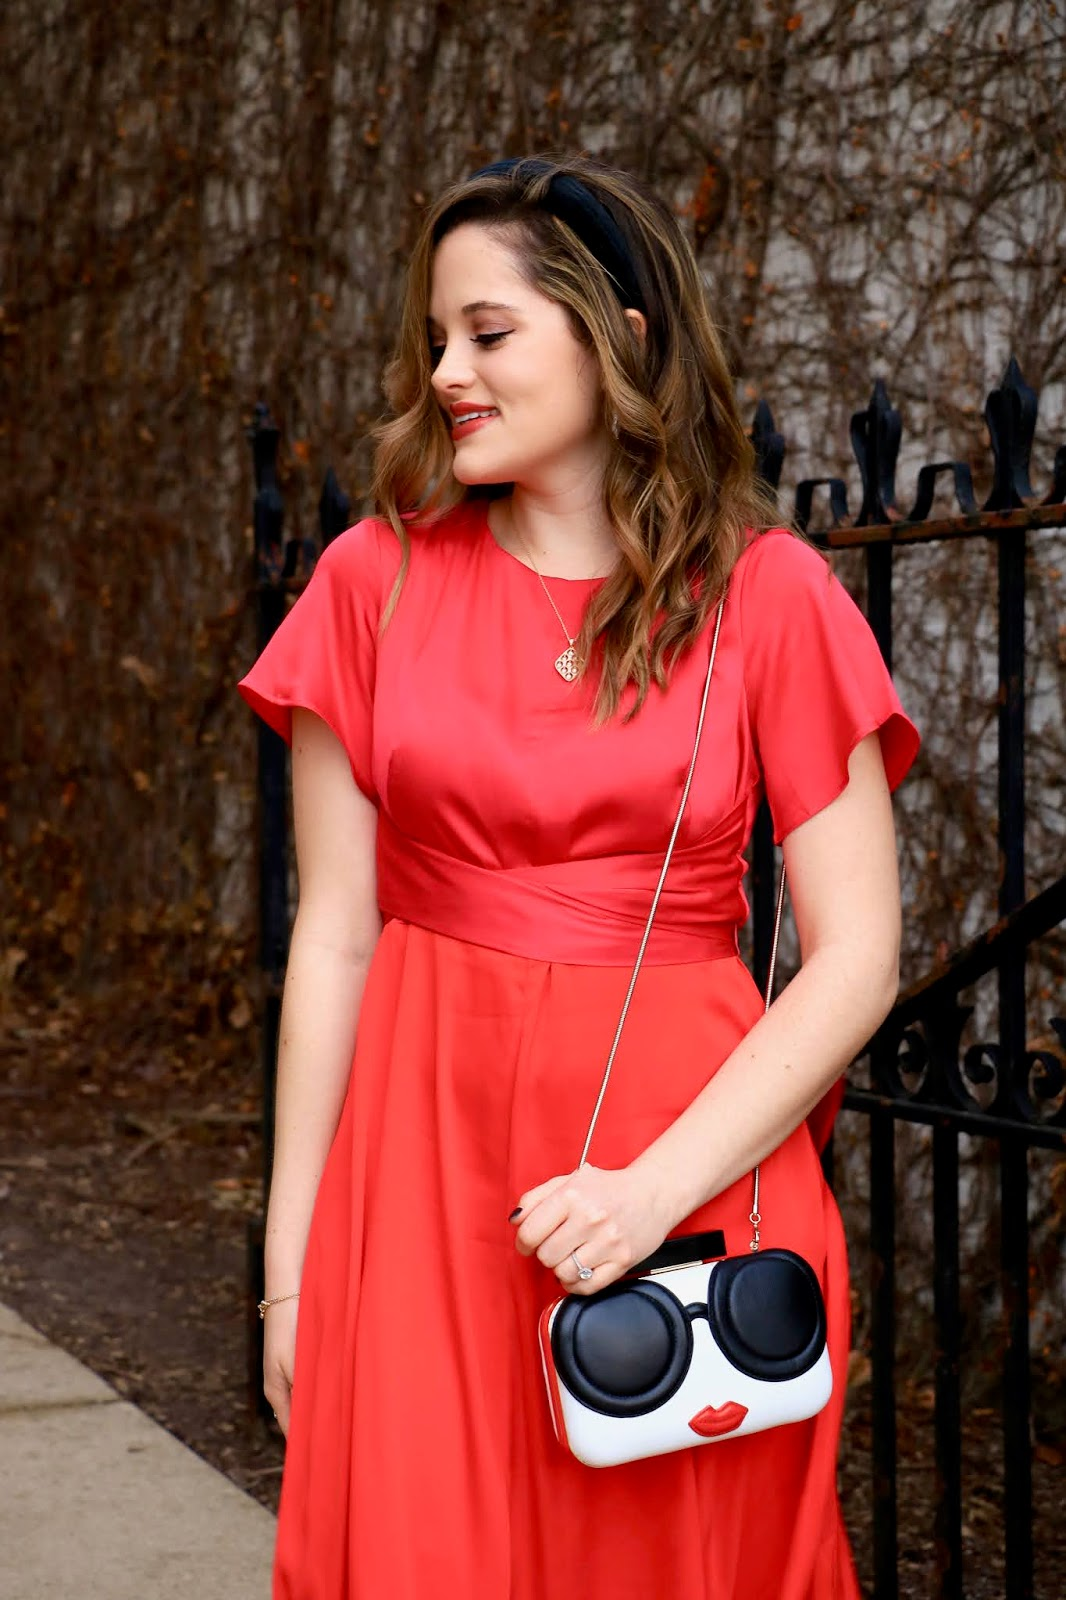 Nyc fashion blogger Kathleen Harper wearing a pink and red dress from Ann Taylor.